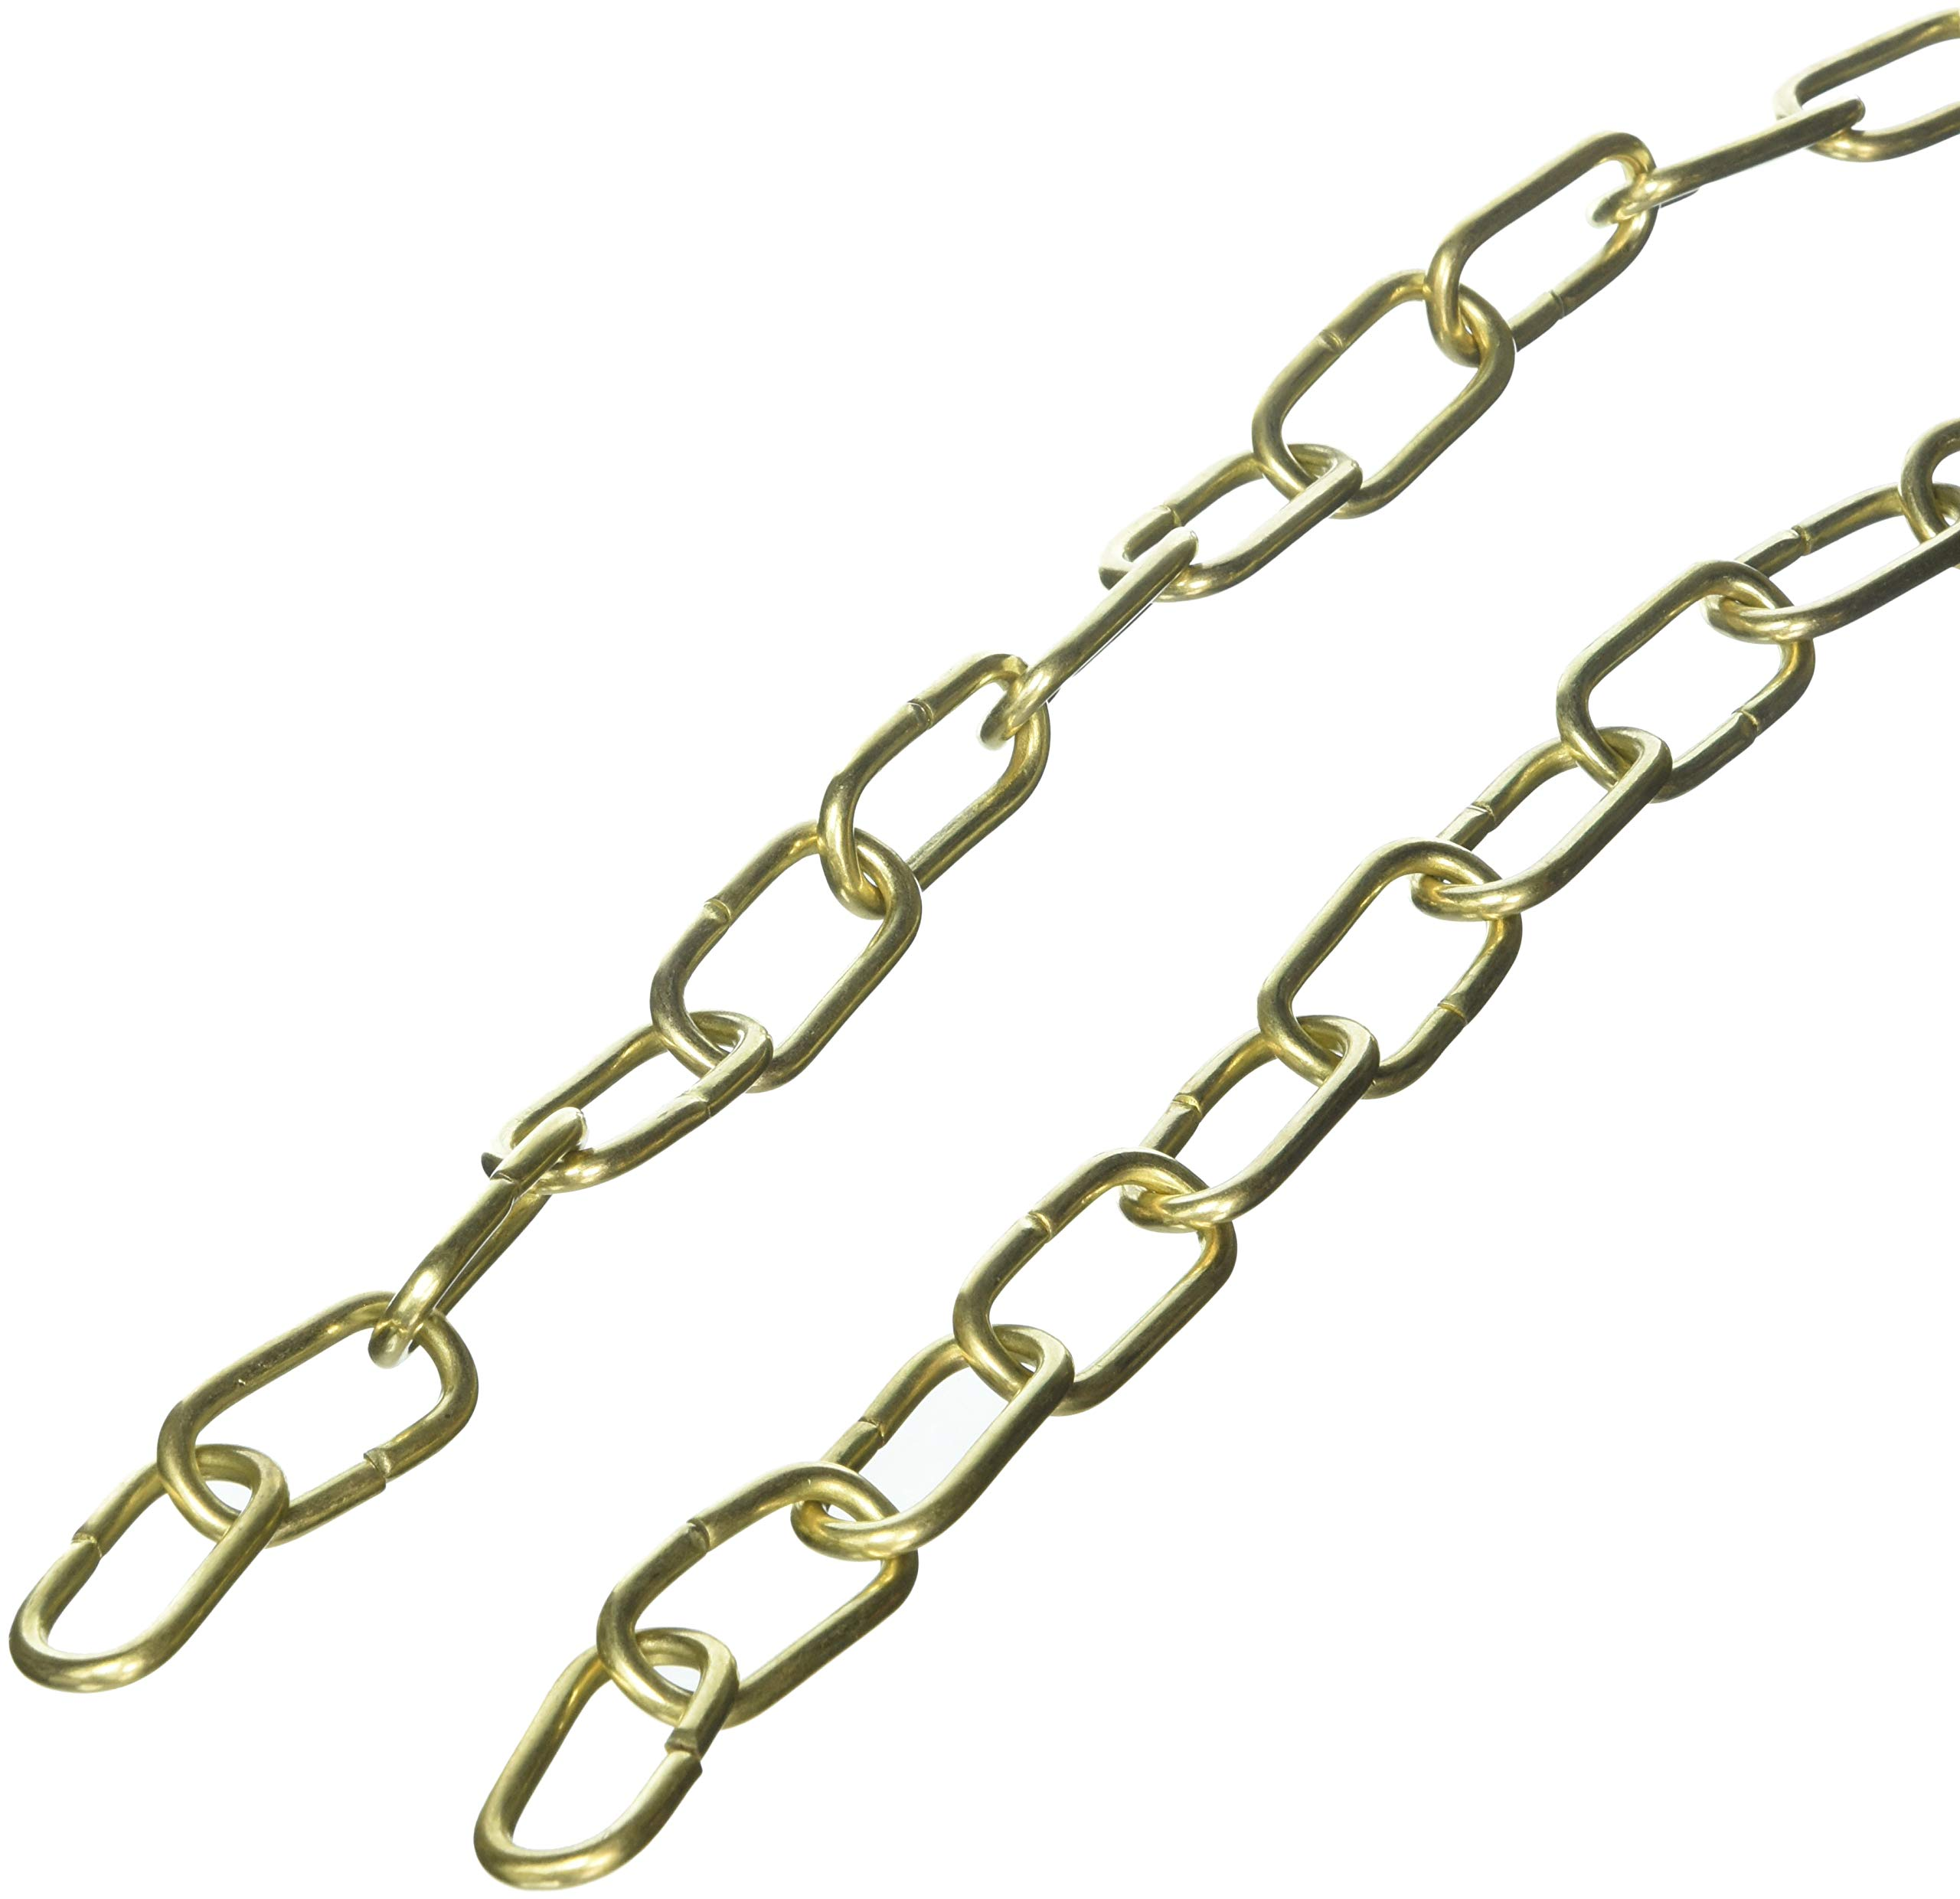 RCH Hardware CH-08-PB-3 Fixture Chain, Polished Brass